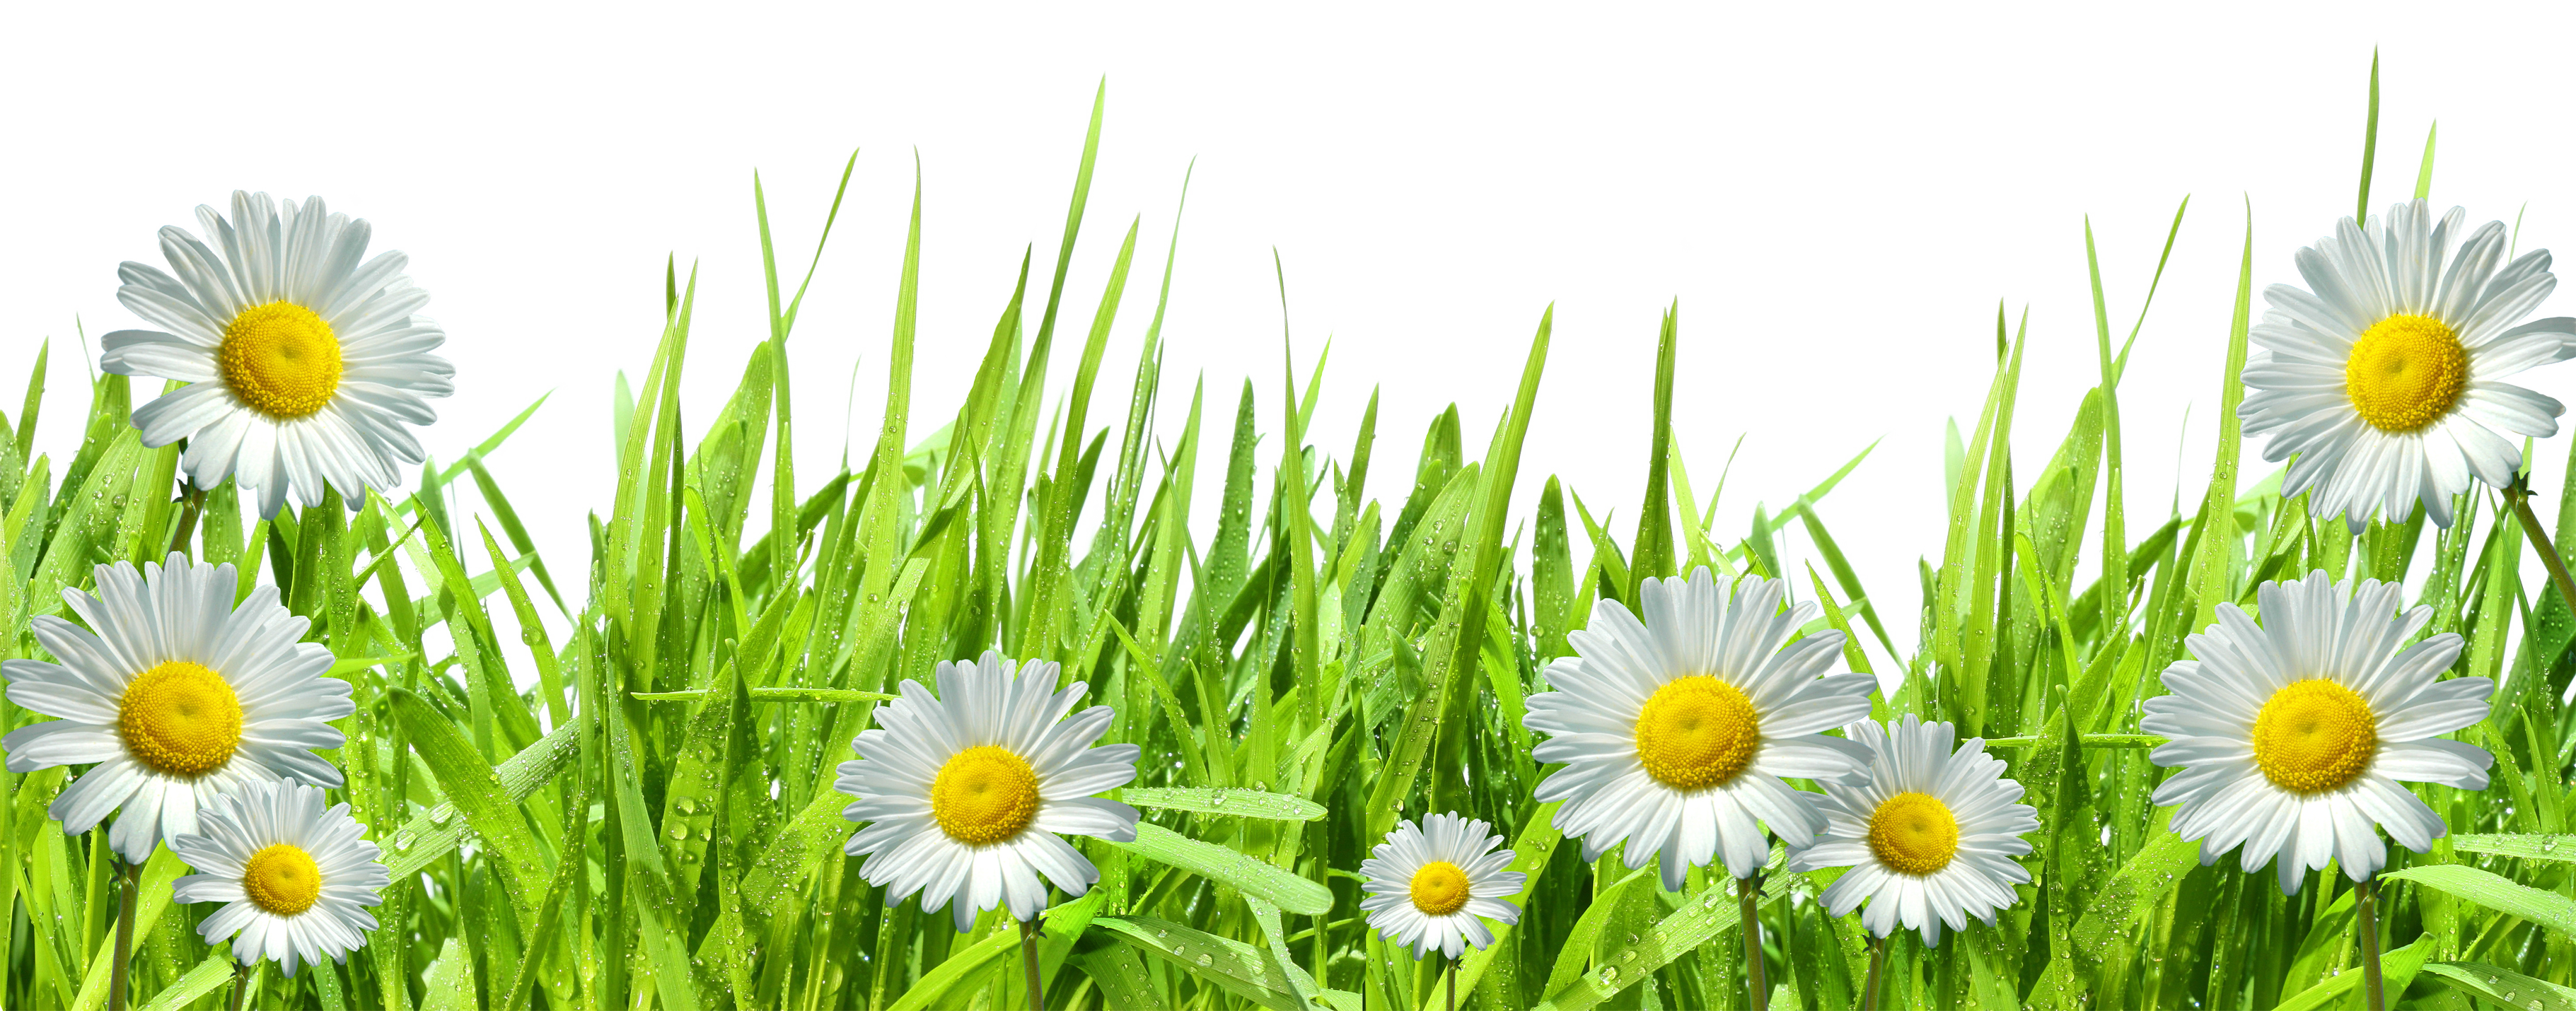 Daisies clipart transparent background. Large grass with dew